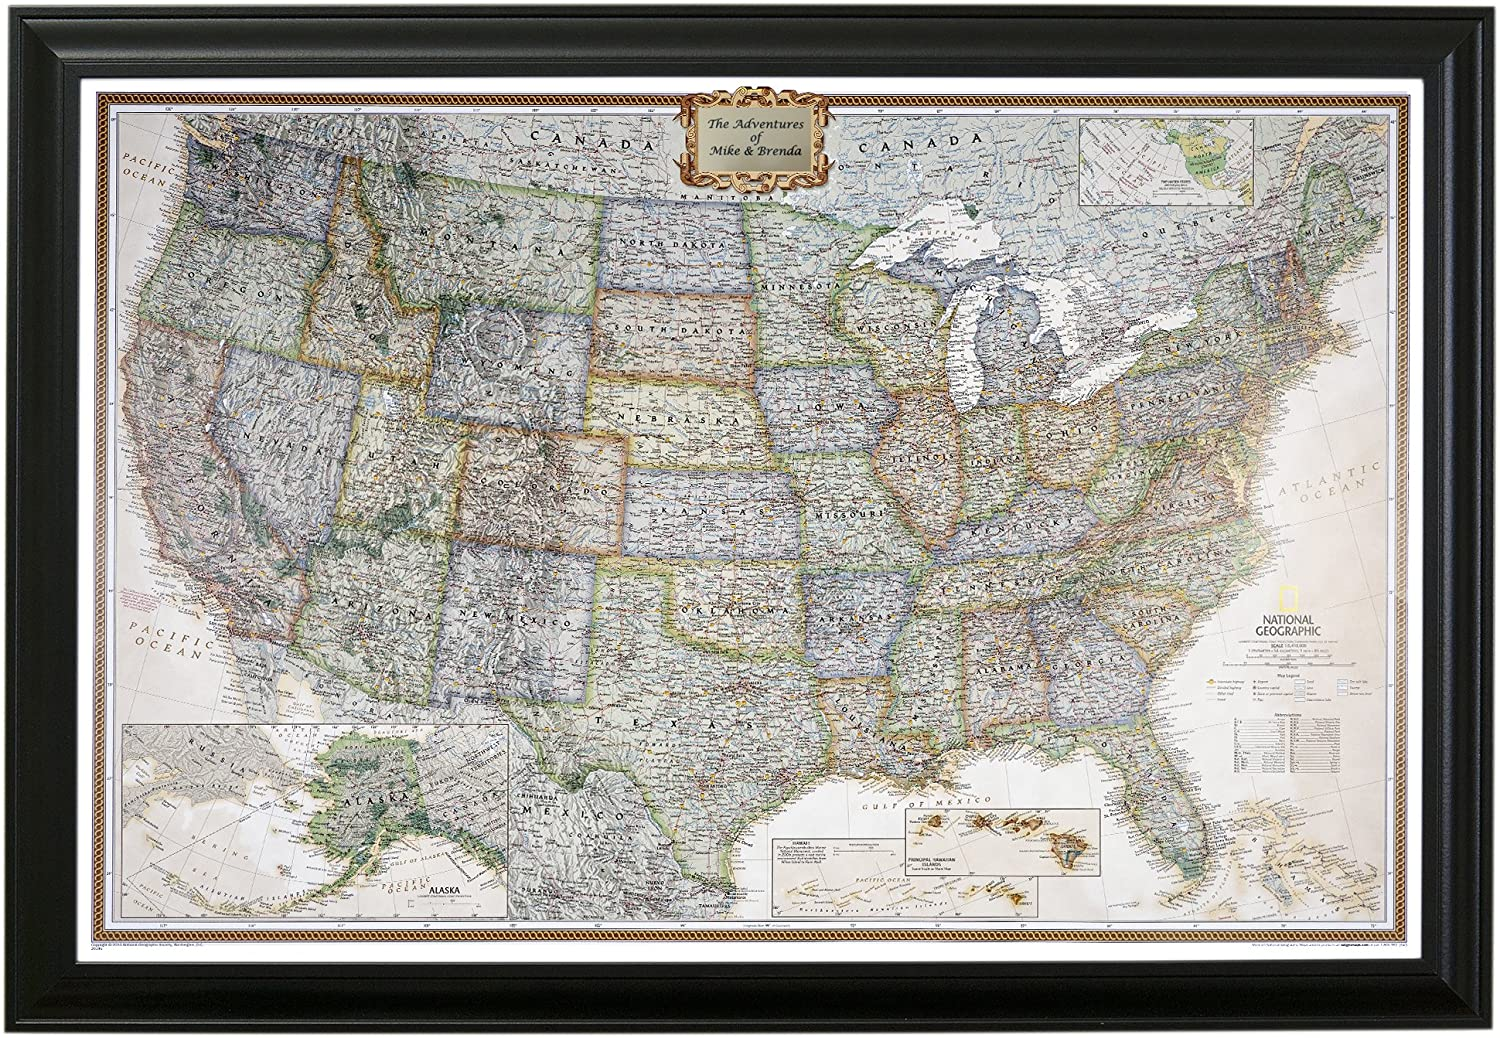 Personalized Us Travel Map With Pins Amazon.com: Push Pin Travel Maps Personalized Executive US with